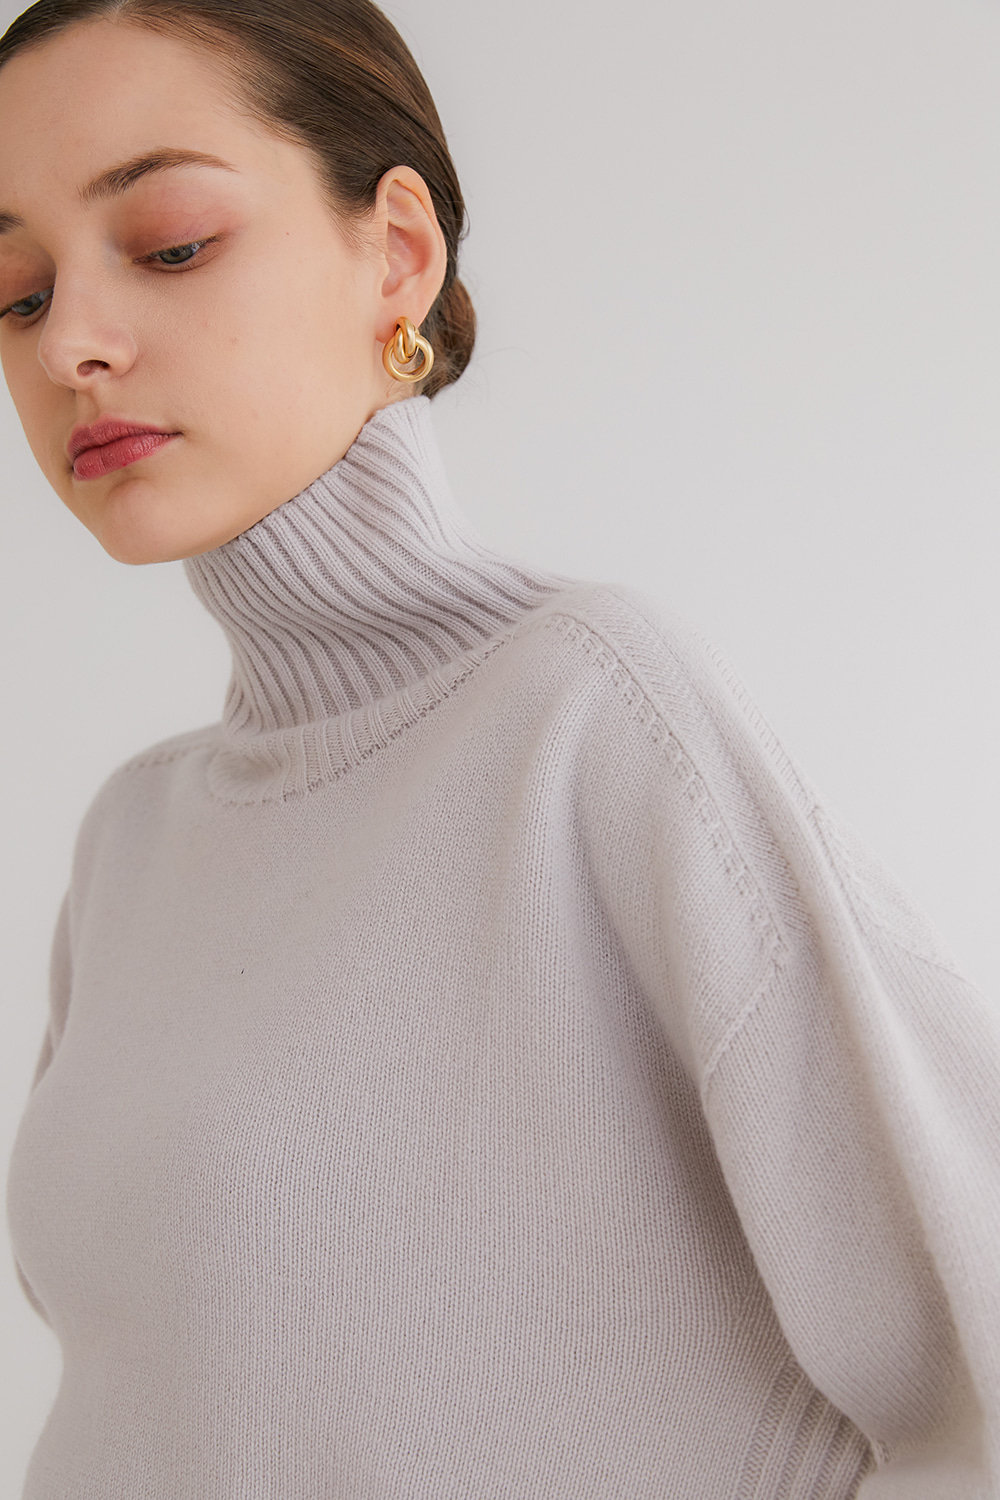 Pure cashmere100 whole-garment knitting turtleneck pullover - Dove gray (인기 상품/한정 수량/주문 폭주)